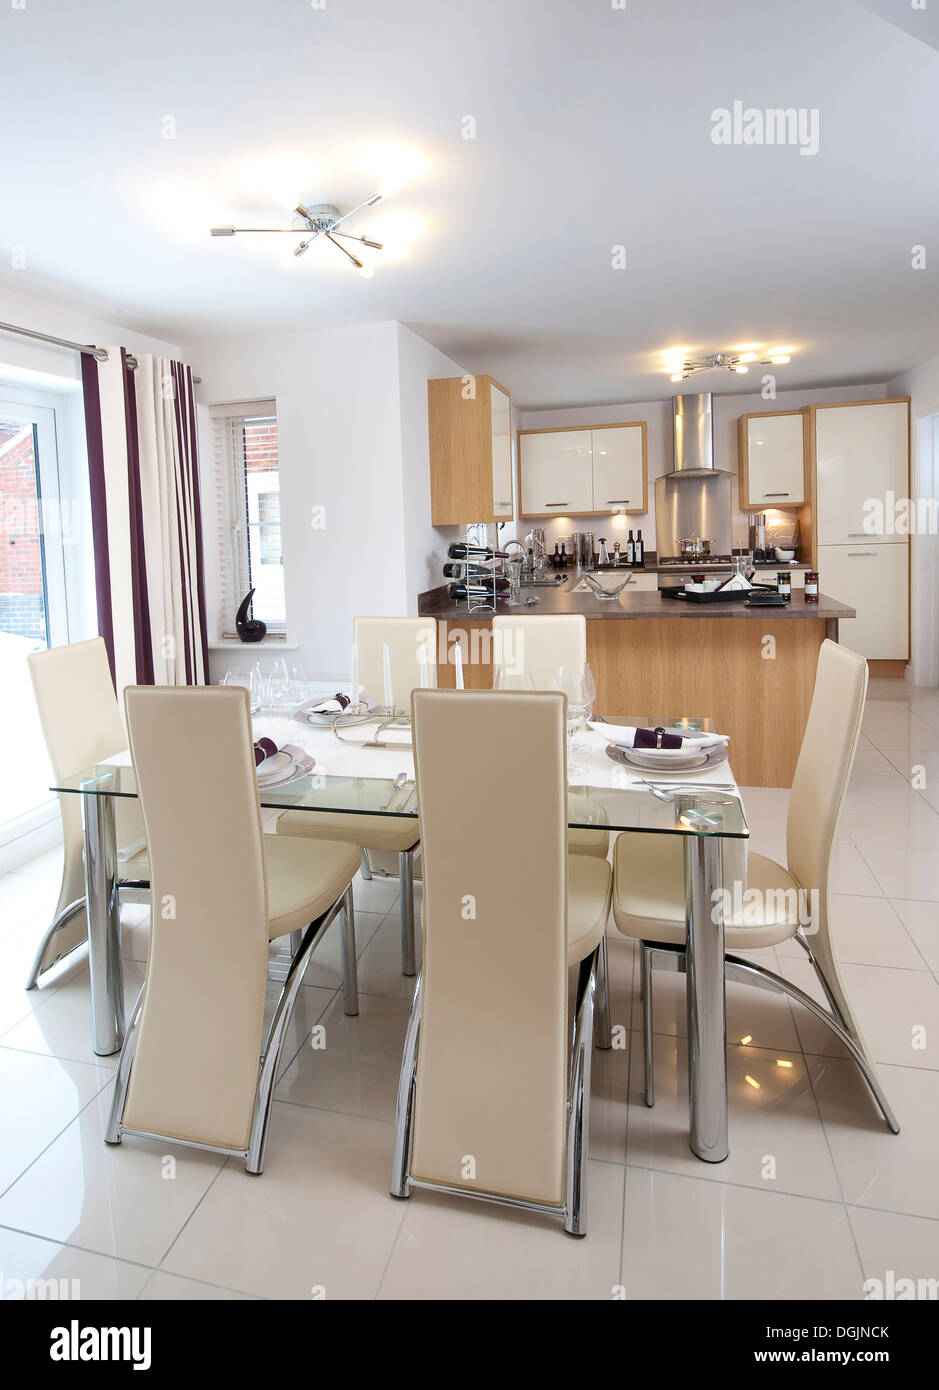 Beautiful contemporary open plan kitchen and dining area in a modern house